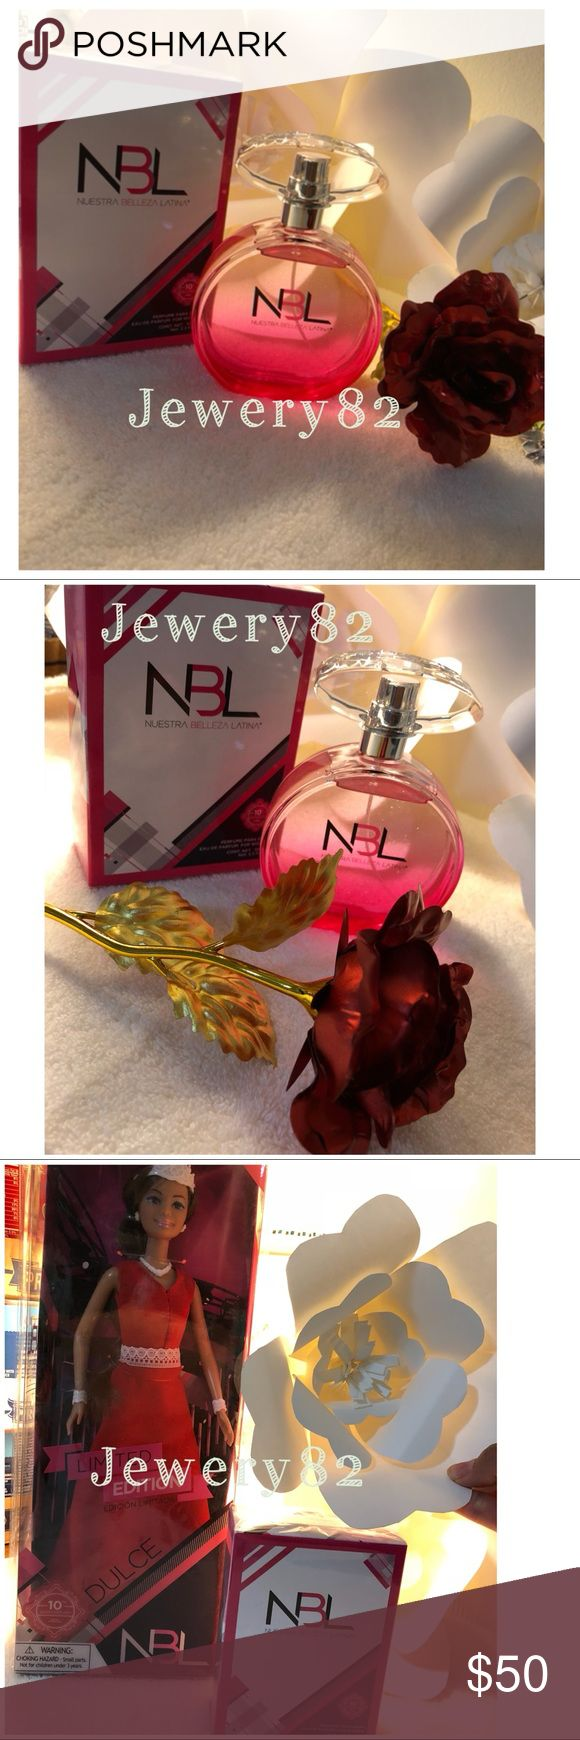 Eau de PARFUM. Perfume para damas   Come with free doll collection.  new with gift box.  beautiful gift.  Nuestra Belleza Latina limited Edition. Accessories